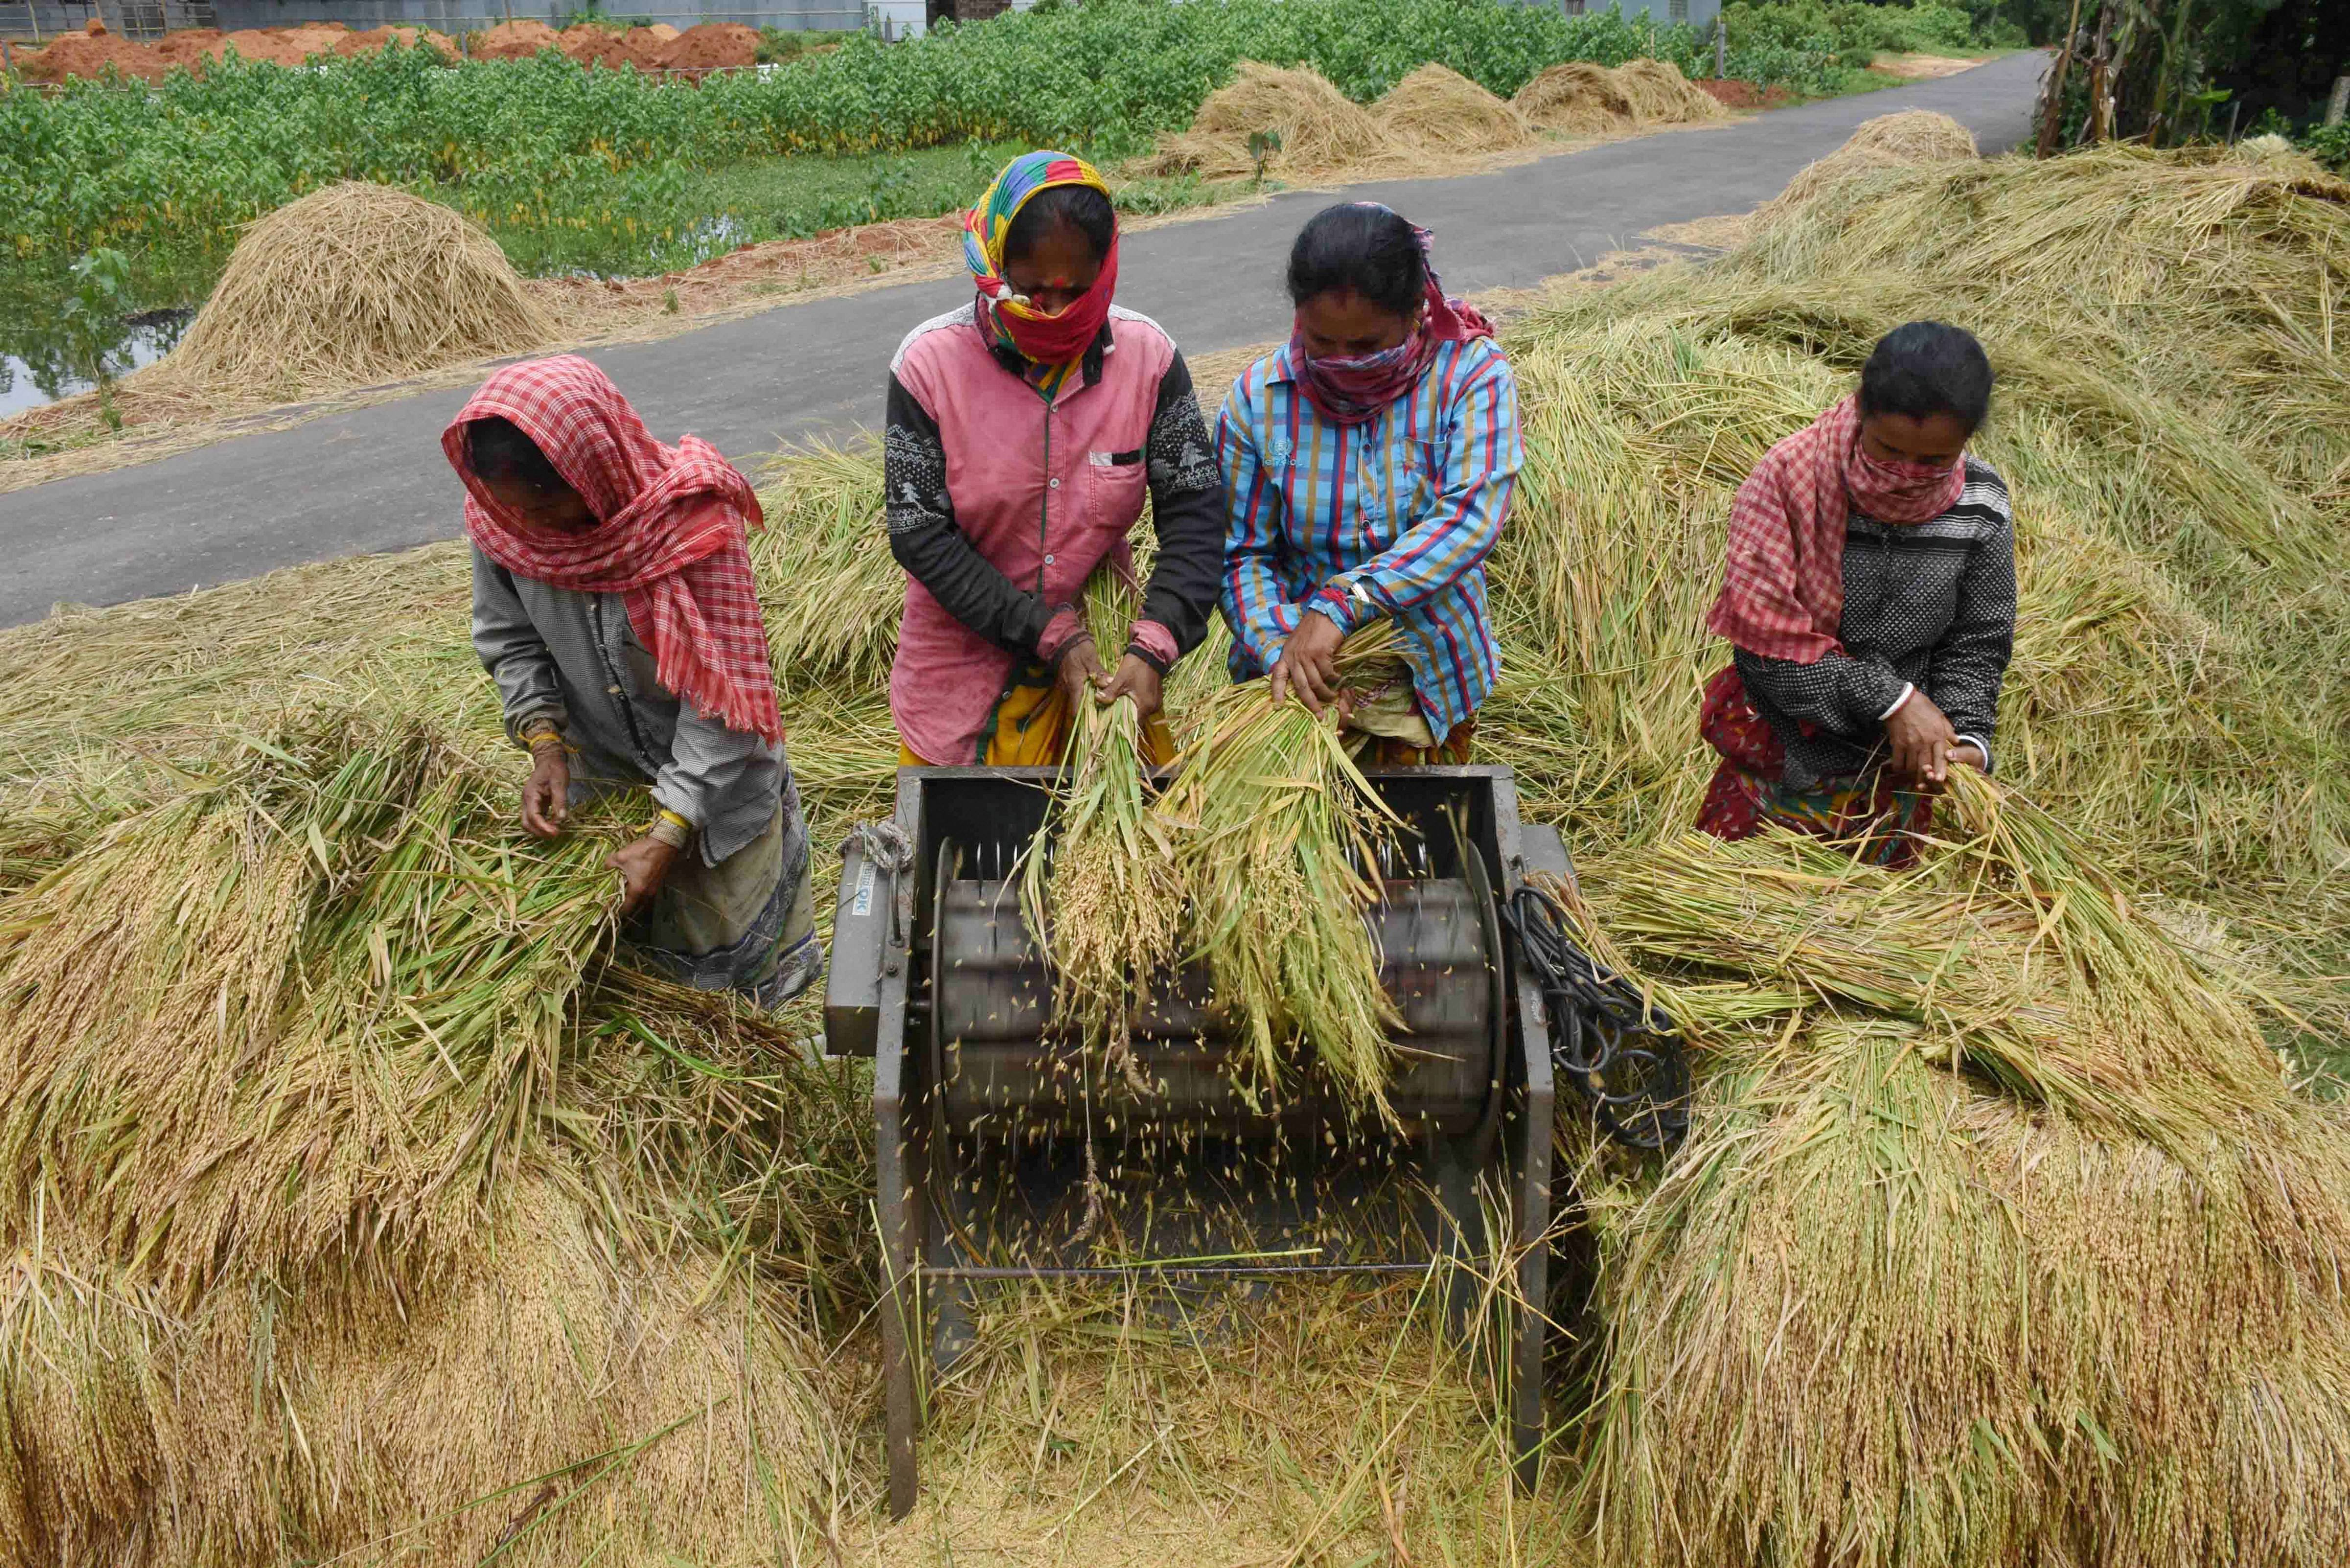 Farmers thrashing harvested crops at a field, during the ongoing Covid-19 lockdown, near Agartala, Saturday, May 30, 2020.